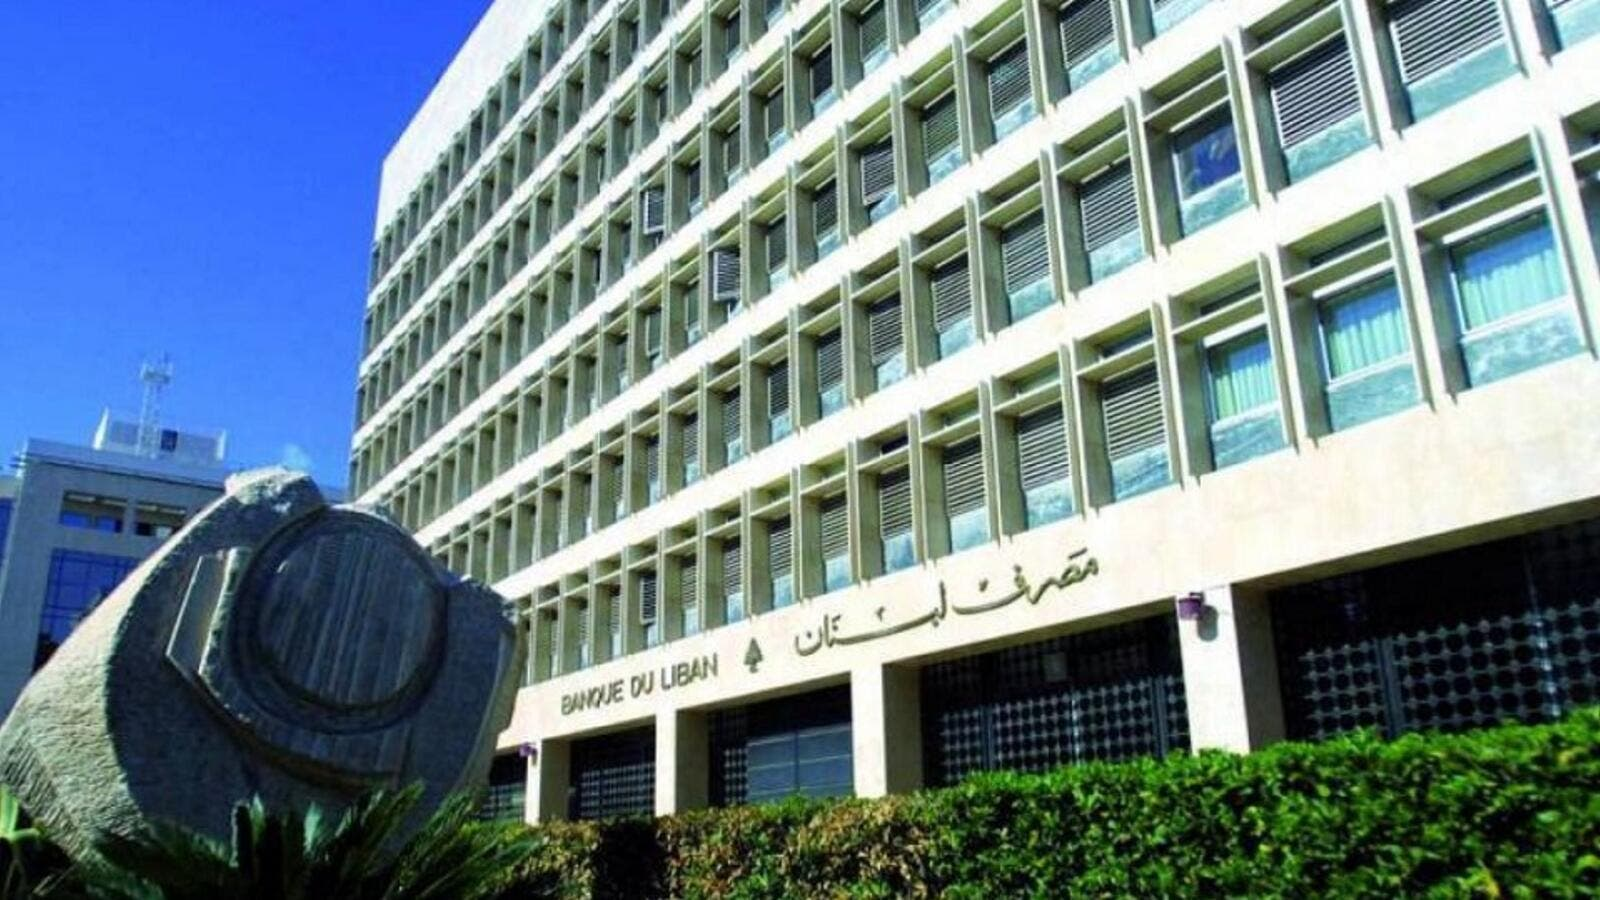 Lebanon: 'Temporary' Measures Announced for Commercial Banks Amid Security Concerns